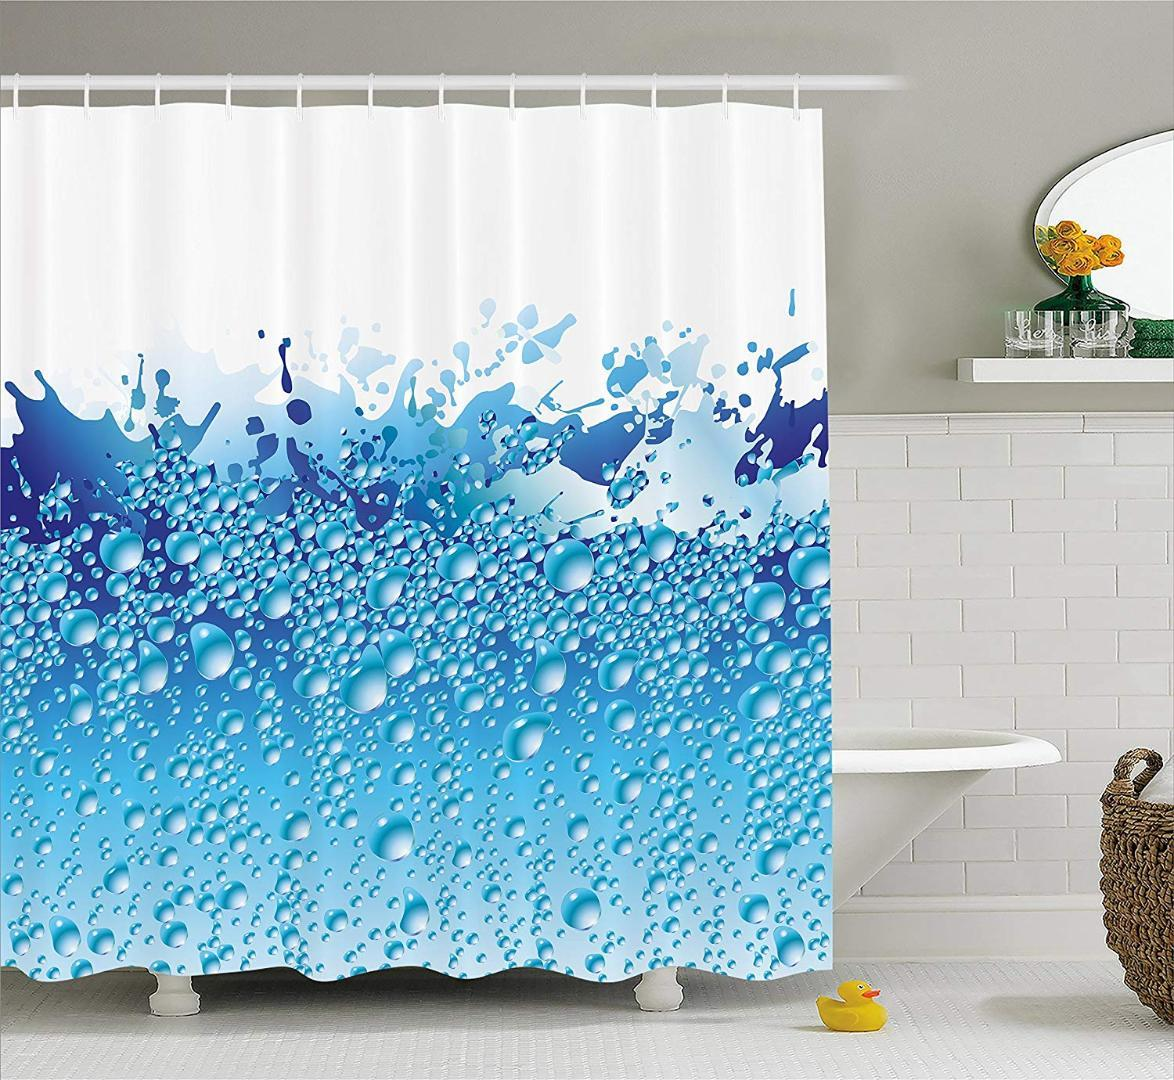 2019 Modern Shower Curtain Aquarium Like Water Image With Bubbles Splashes Drops Print Fabric Bathroom Set White Dark Blue And Sky From Homesets